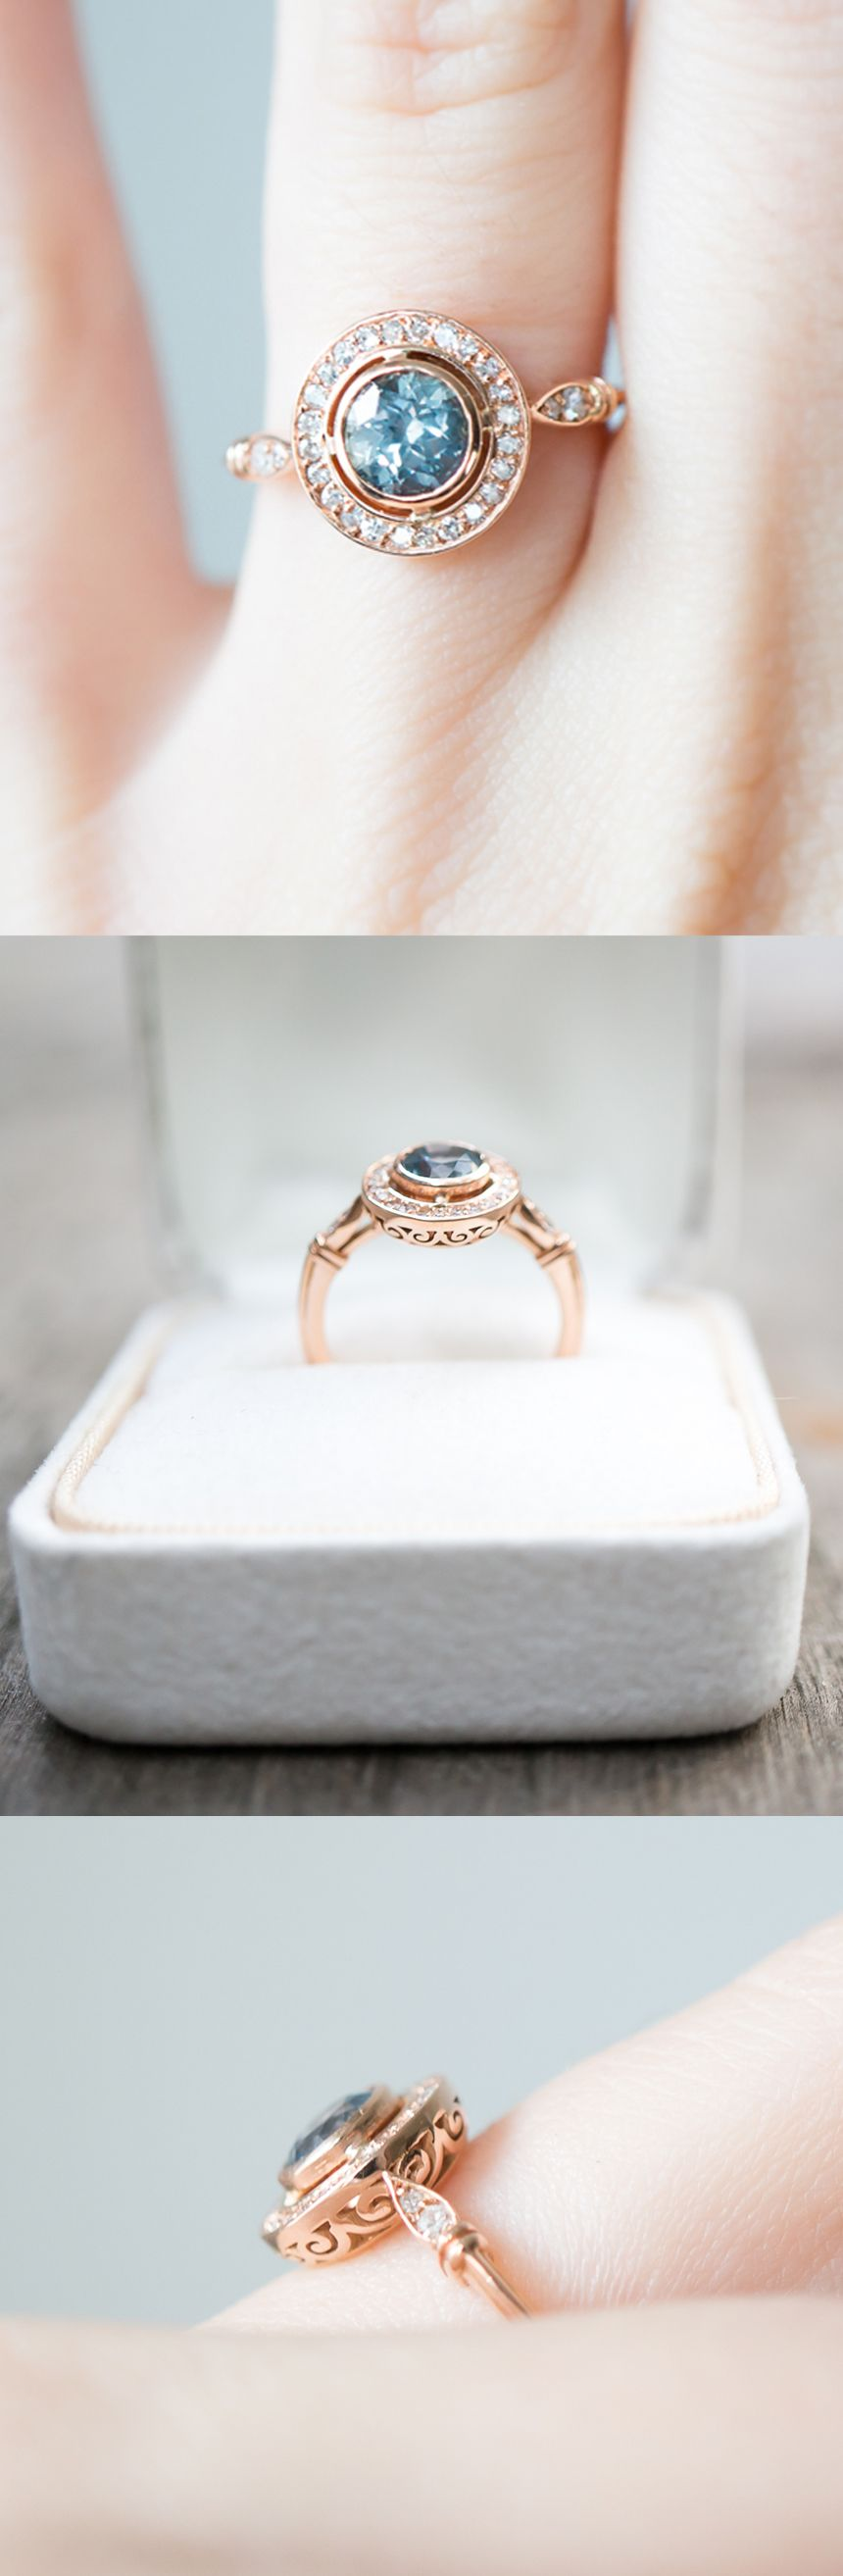 even bands plus diamonds side set rings detailed peek channel jxhykvj details filigree zqsnfhq these boo sets wedding signature cute what a elegant engagement promise and diamond that unique apart make